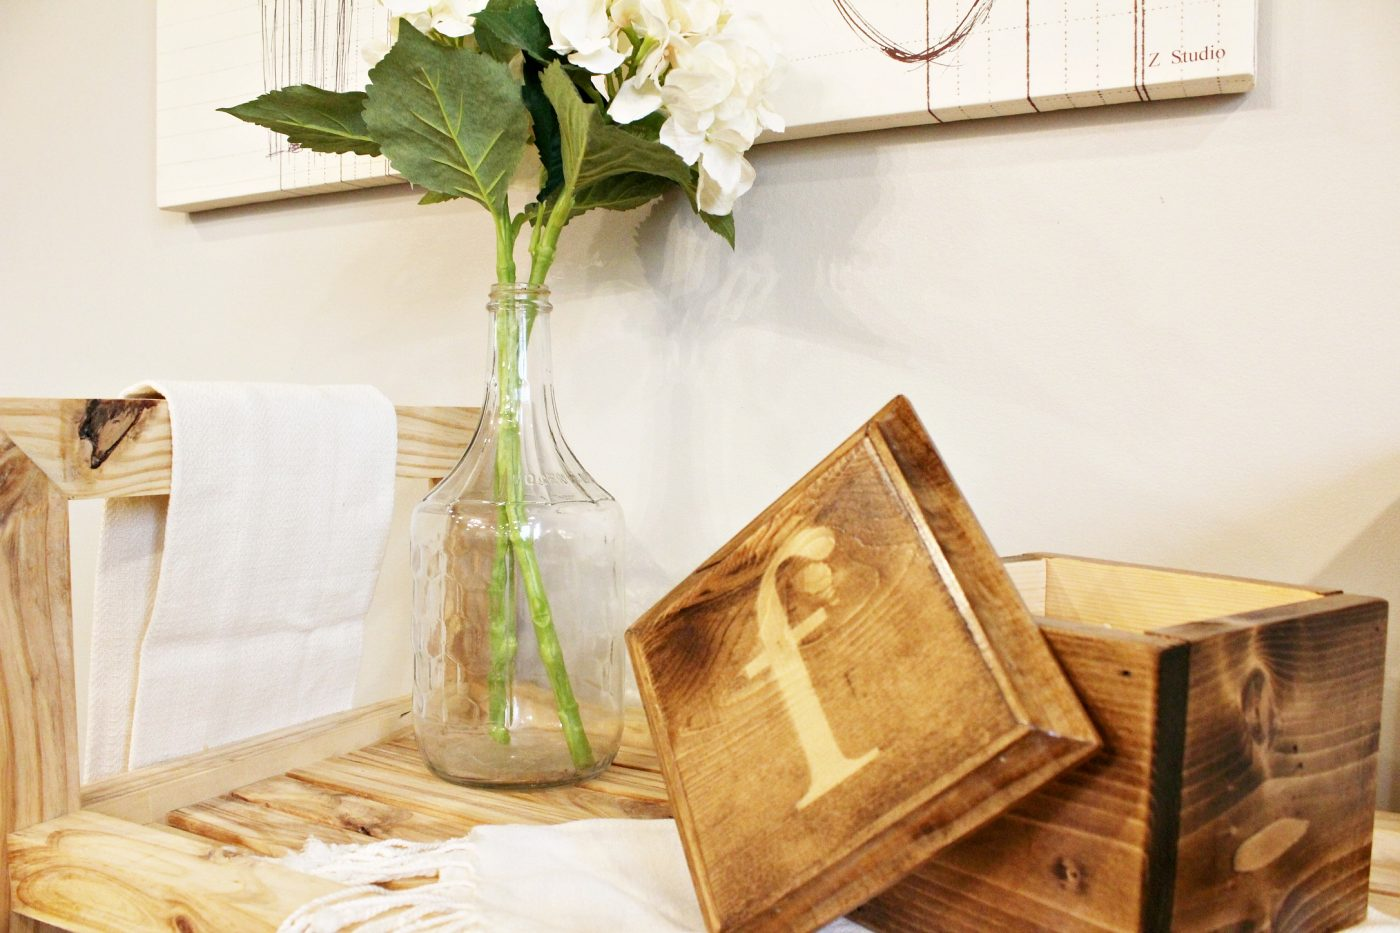 How To Build A Diy Keepsake Box From Scrap Wood